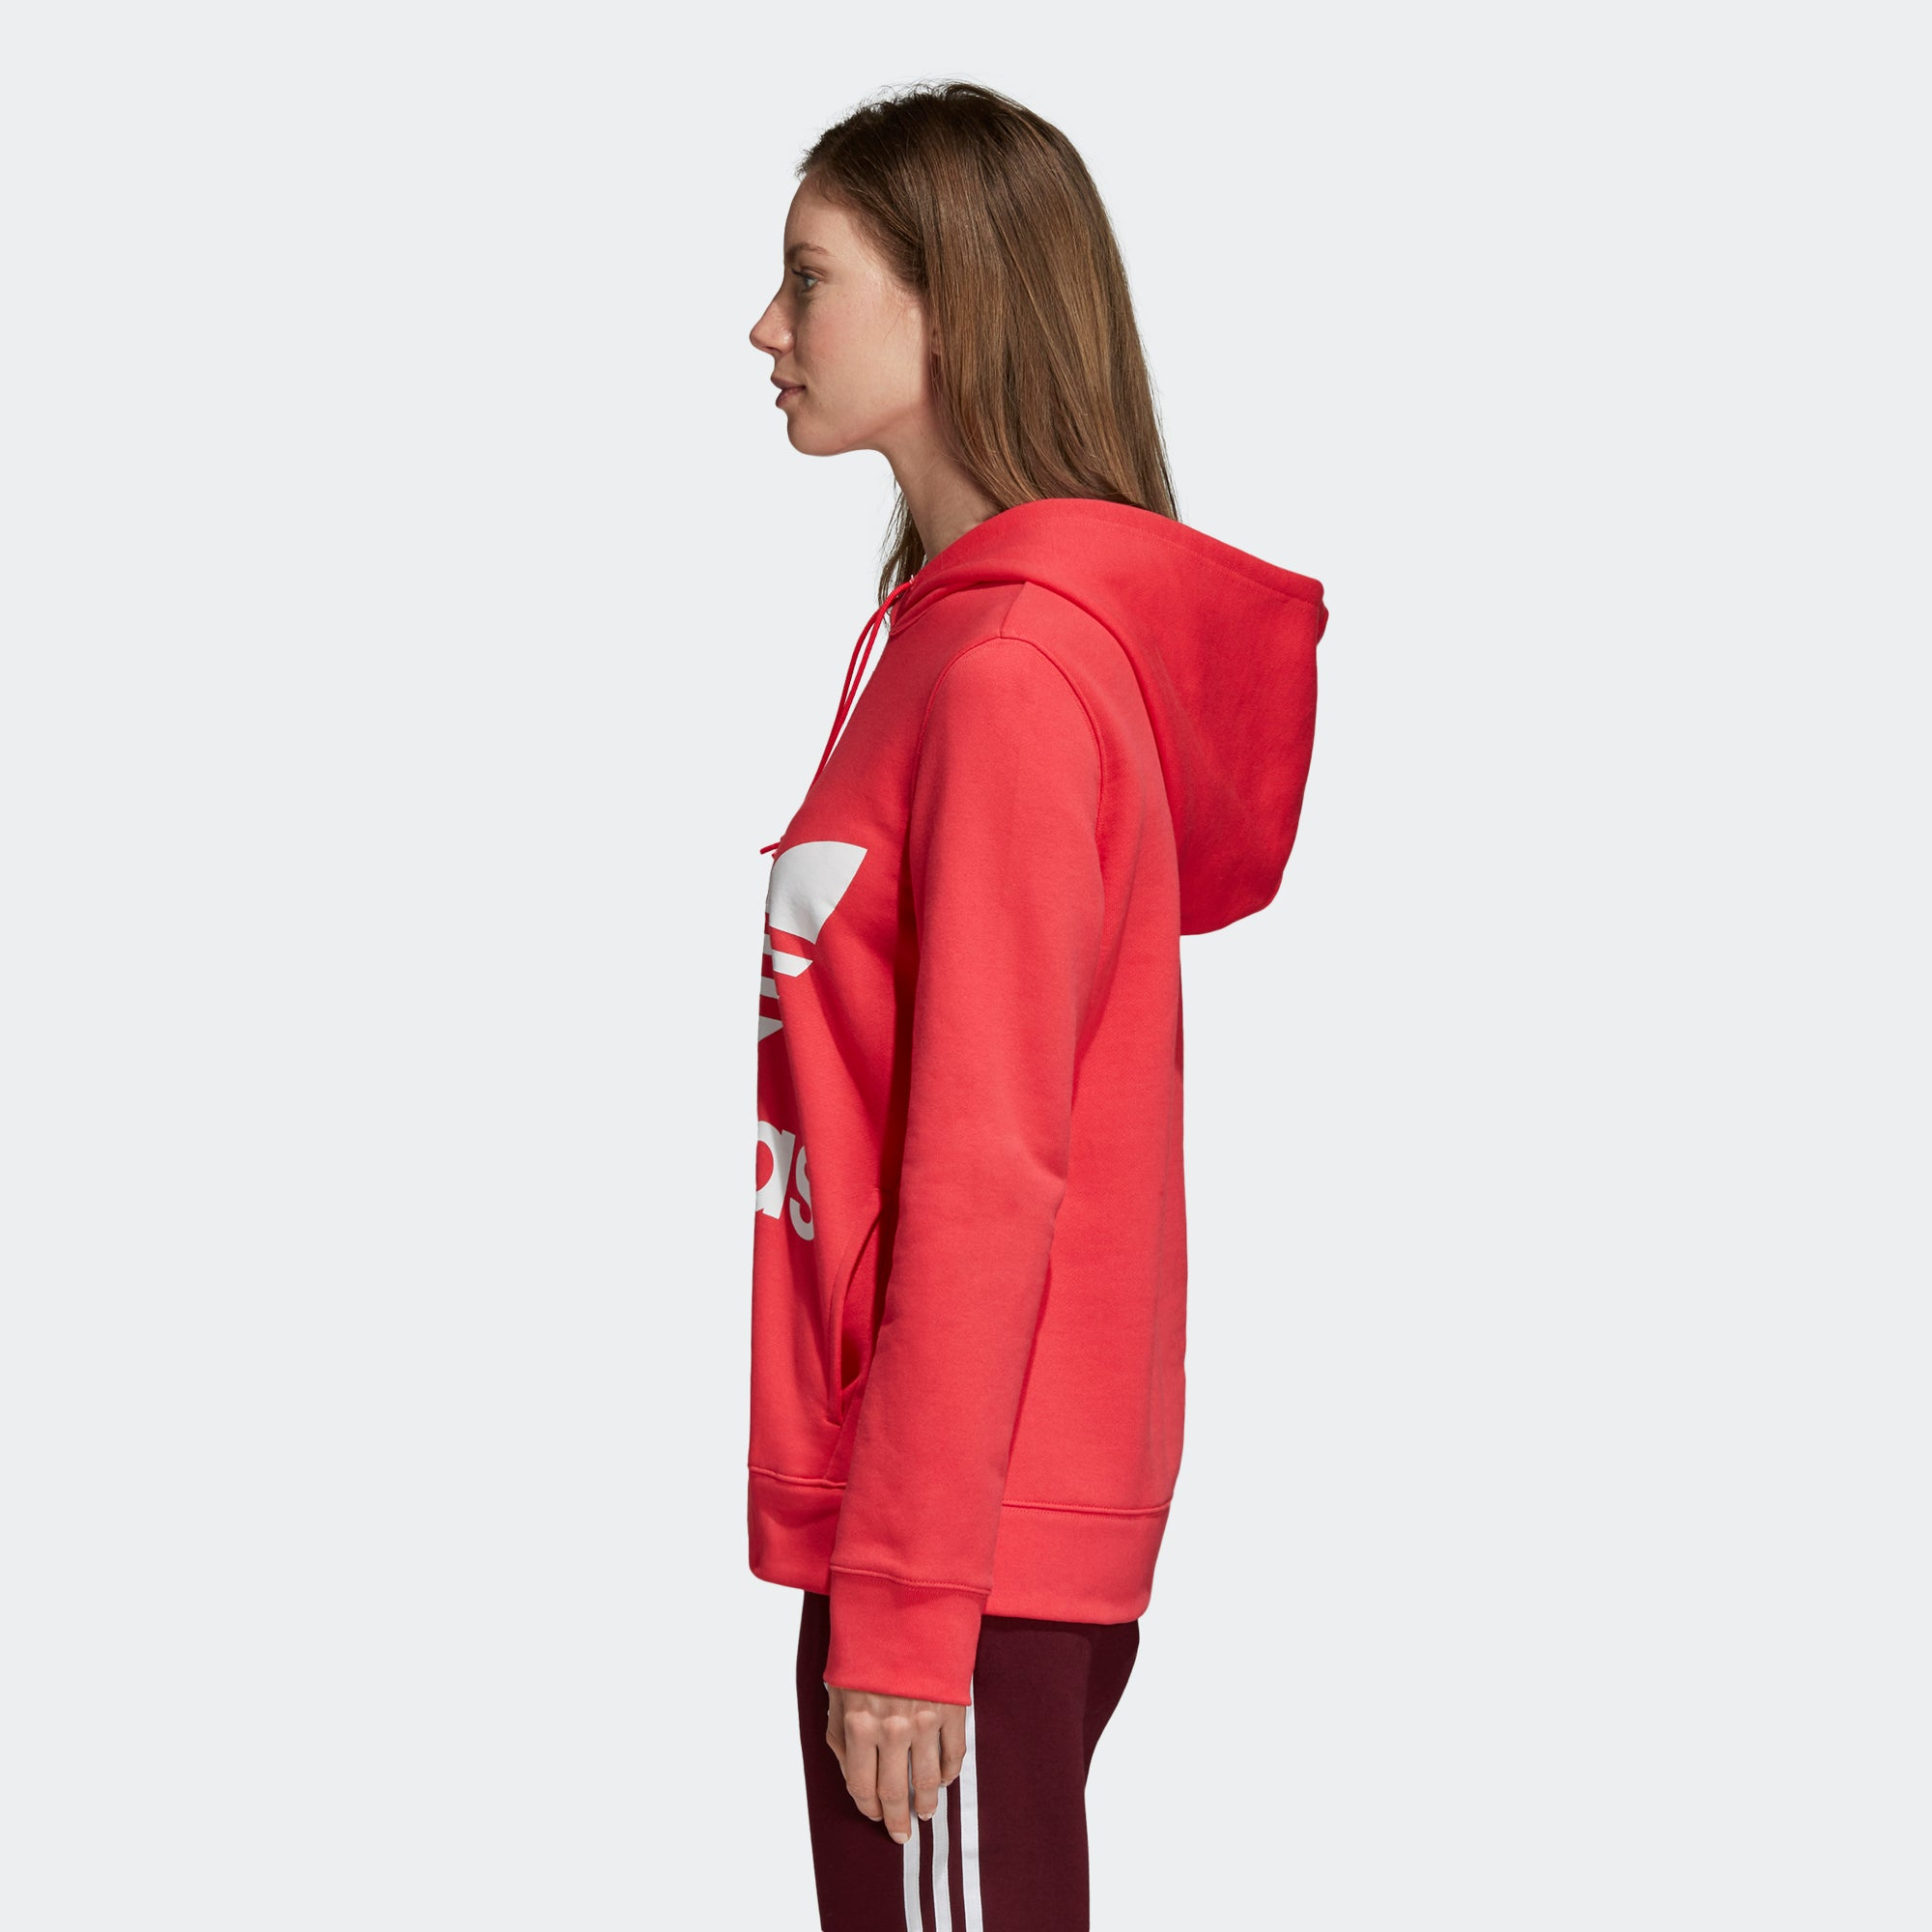 9230f51bee5d Women s adidas Originals Trefoil Hoodie Core Pink. 1